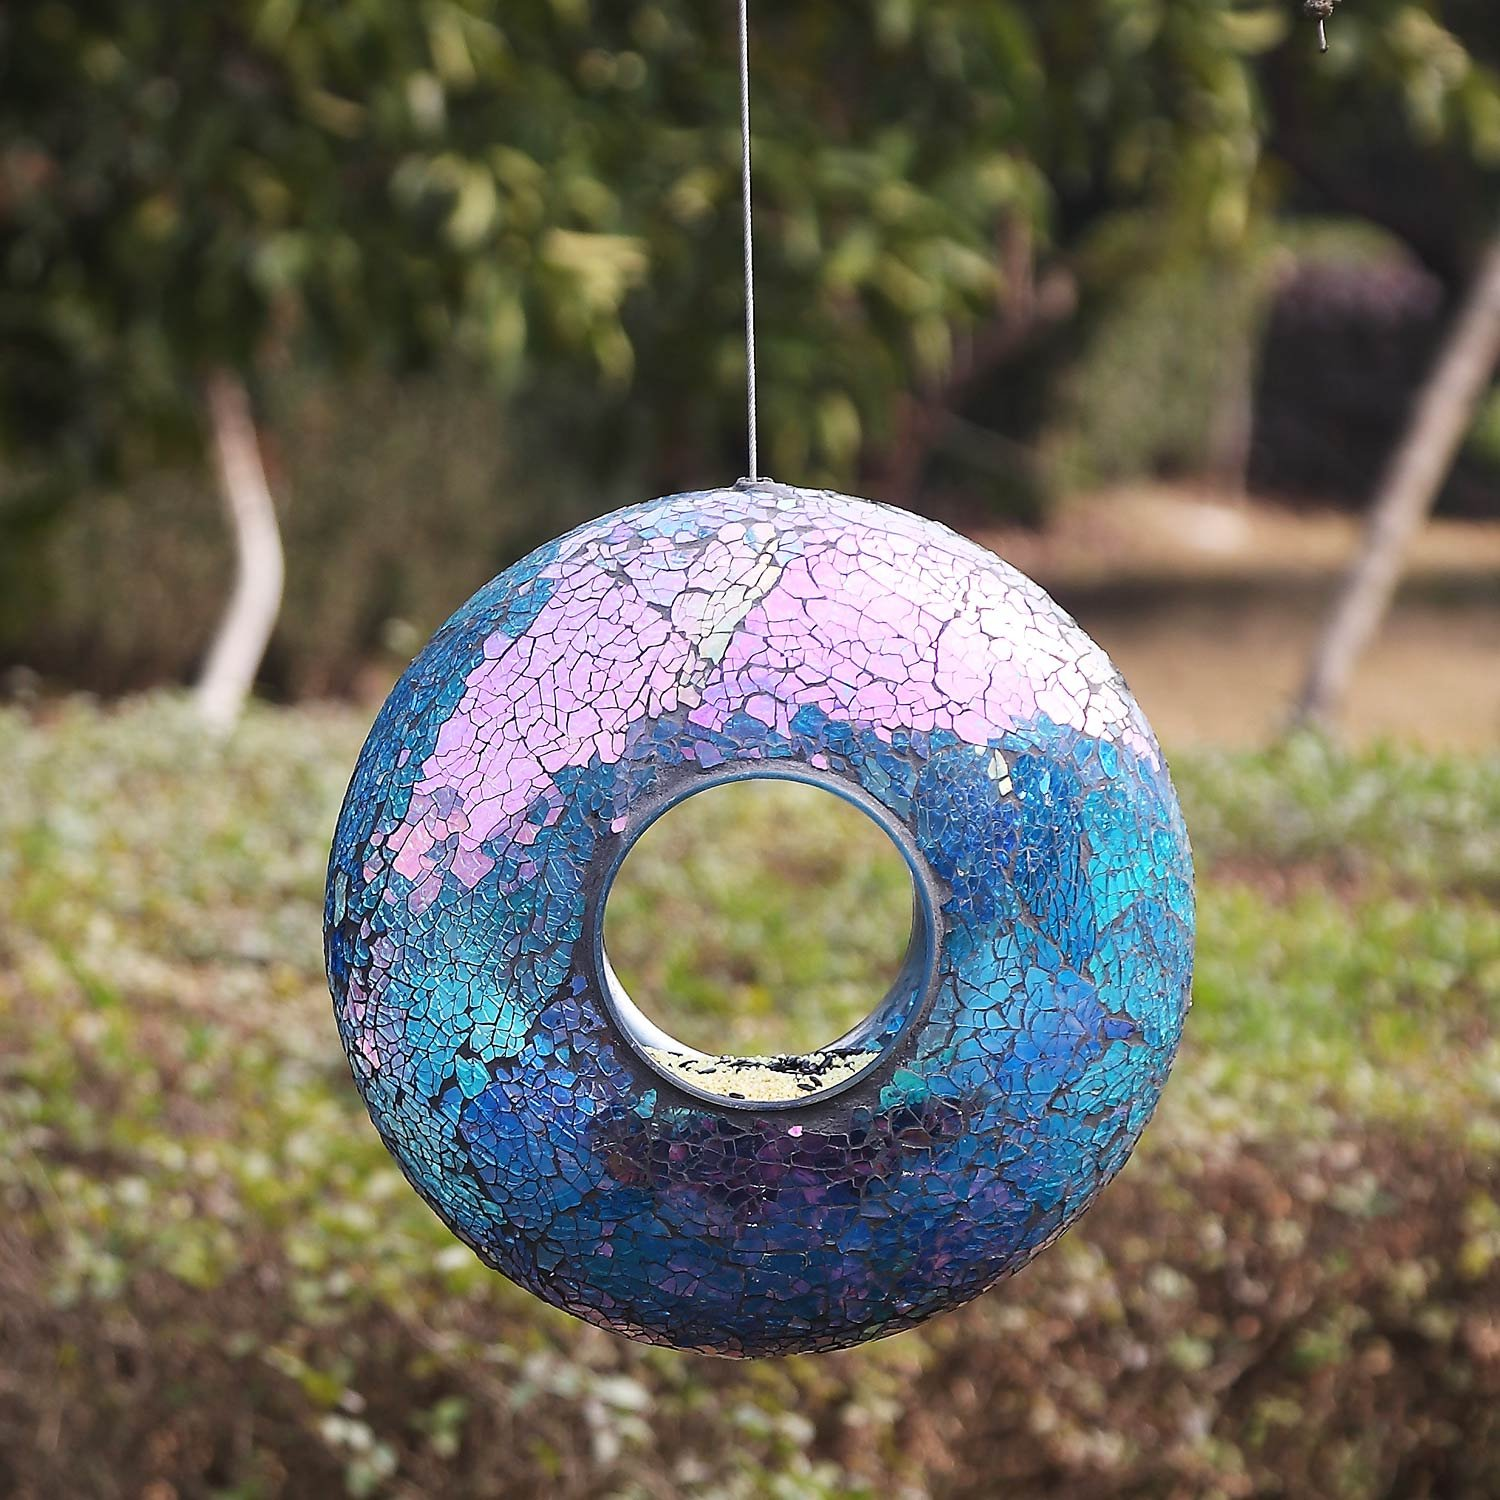 A Ting Garden Hanging Bird Feeder Mosaic Circle for Outdoor Decoration,Blue by A Ting